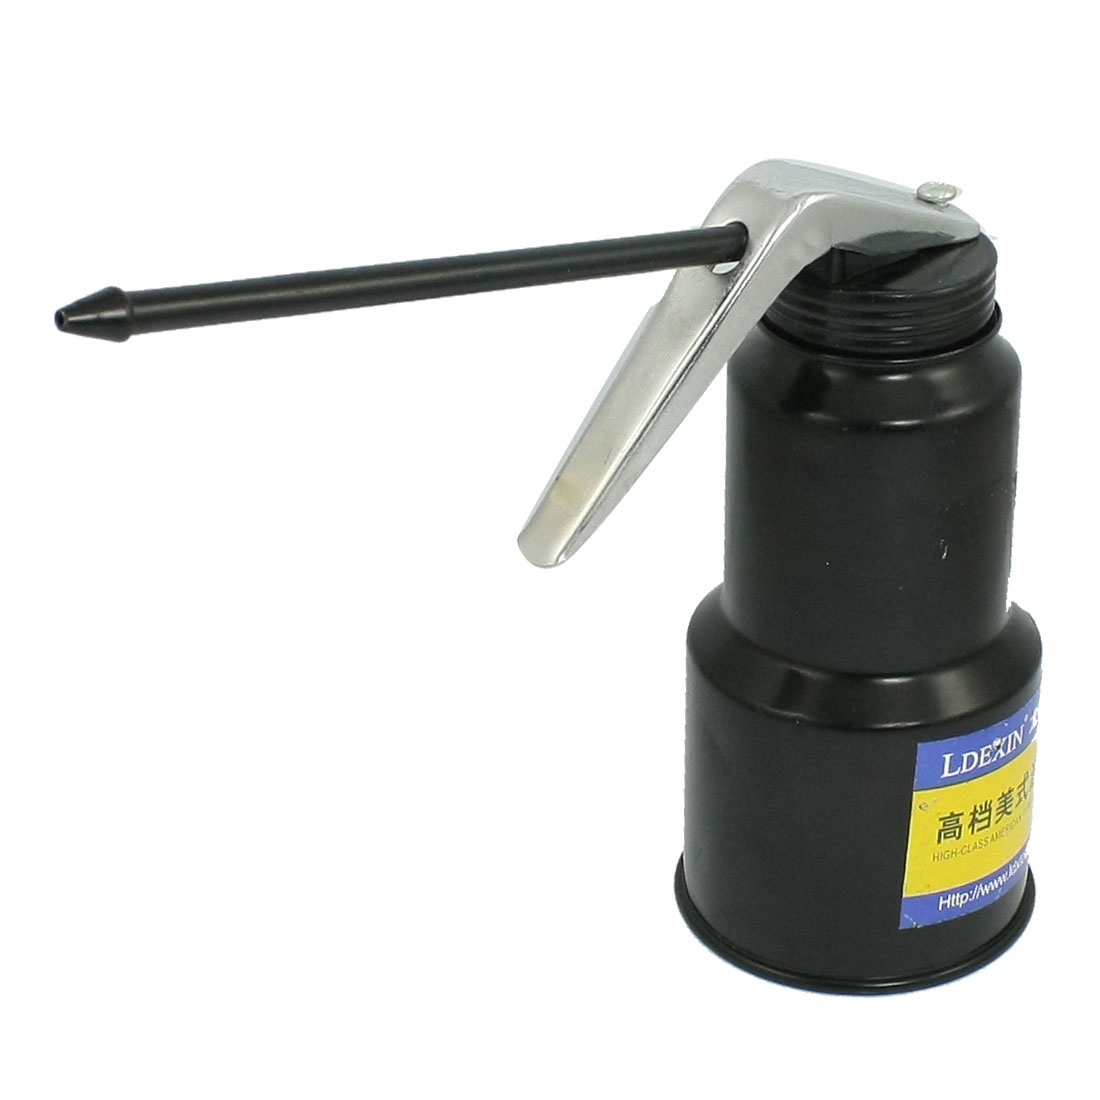 Aluminium Alloy Pneumatic High Pressure Feed Oil Gun Black